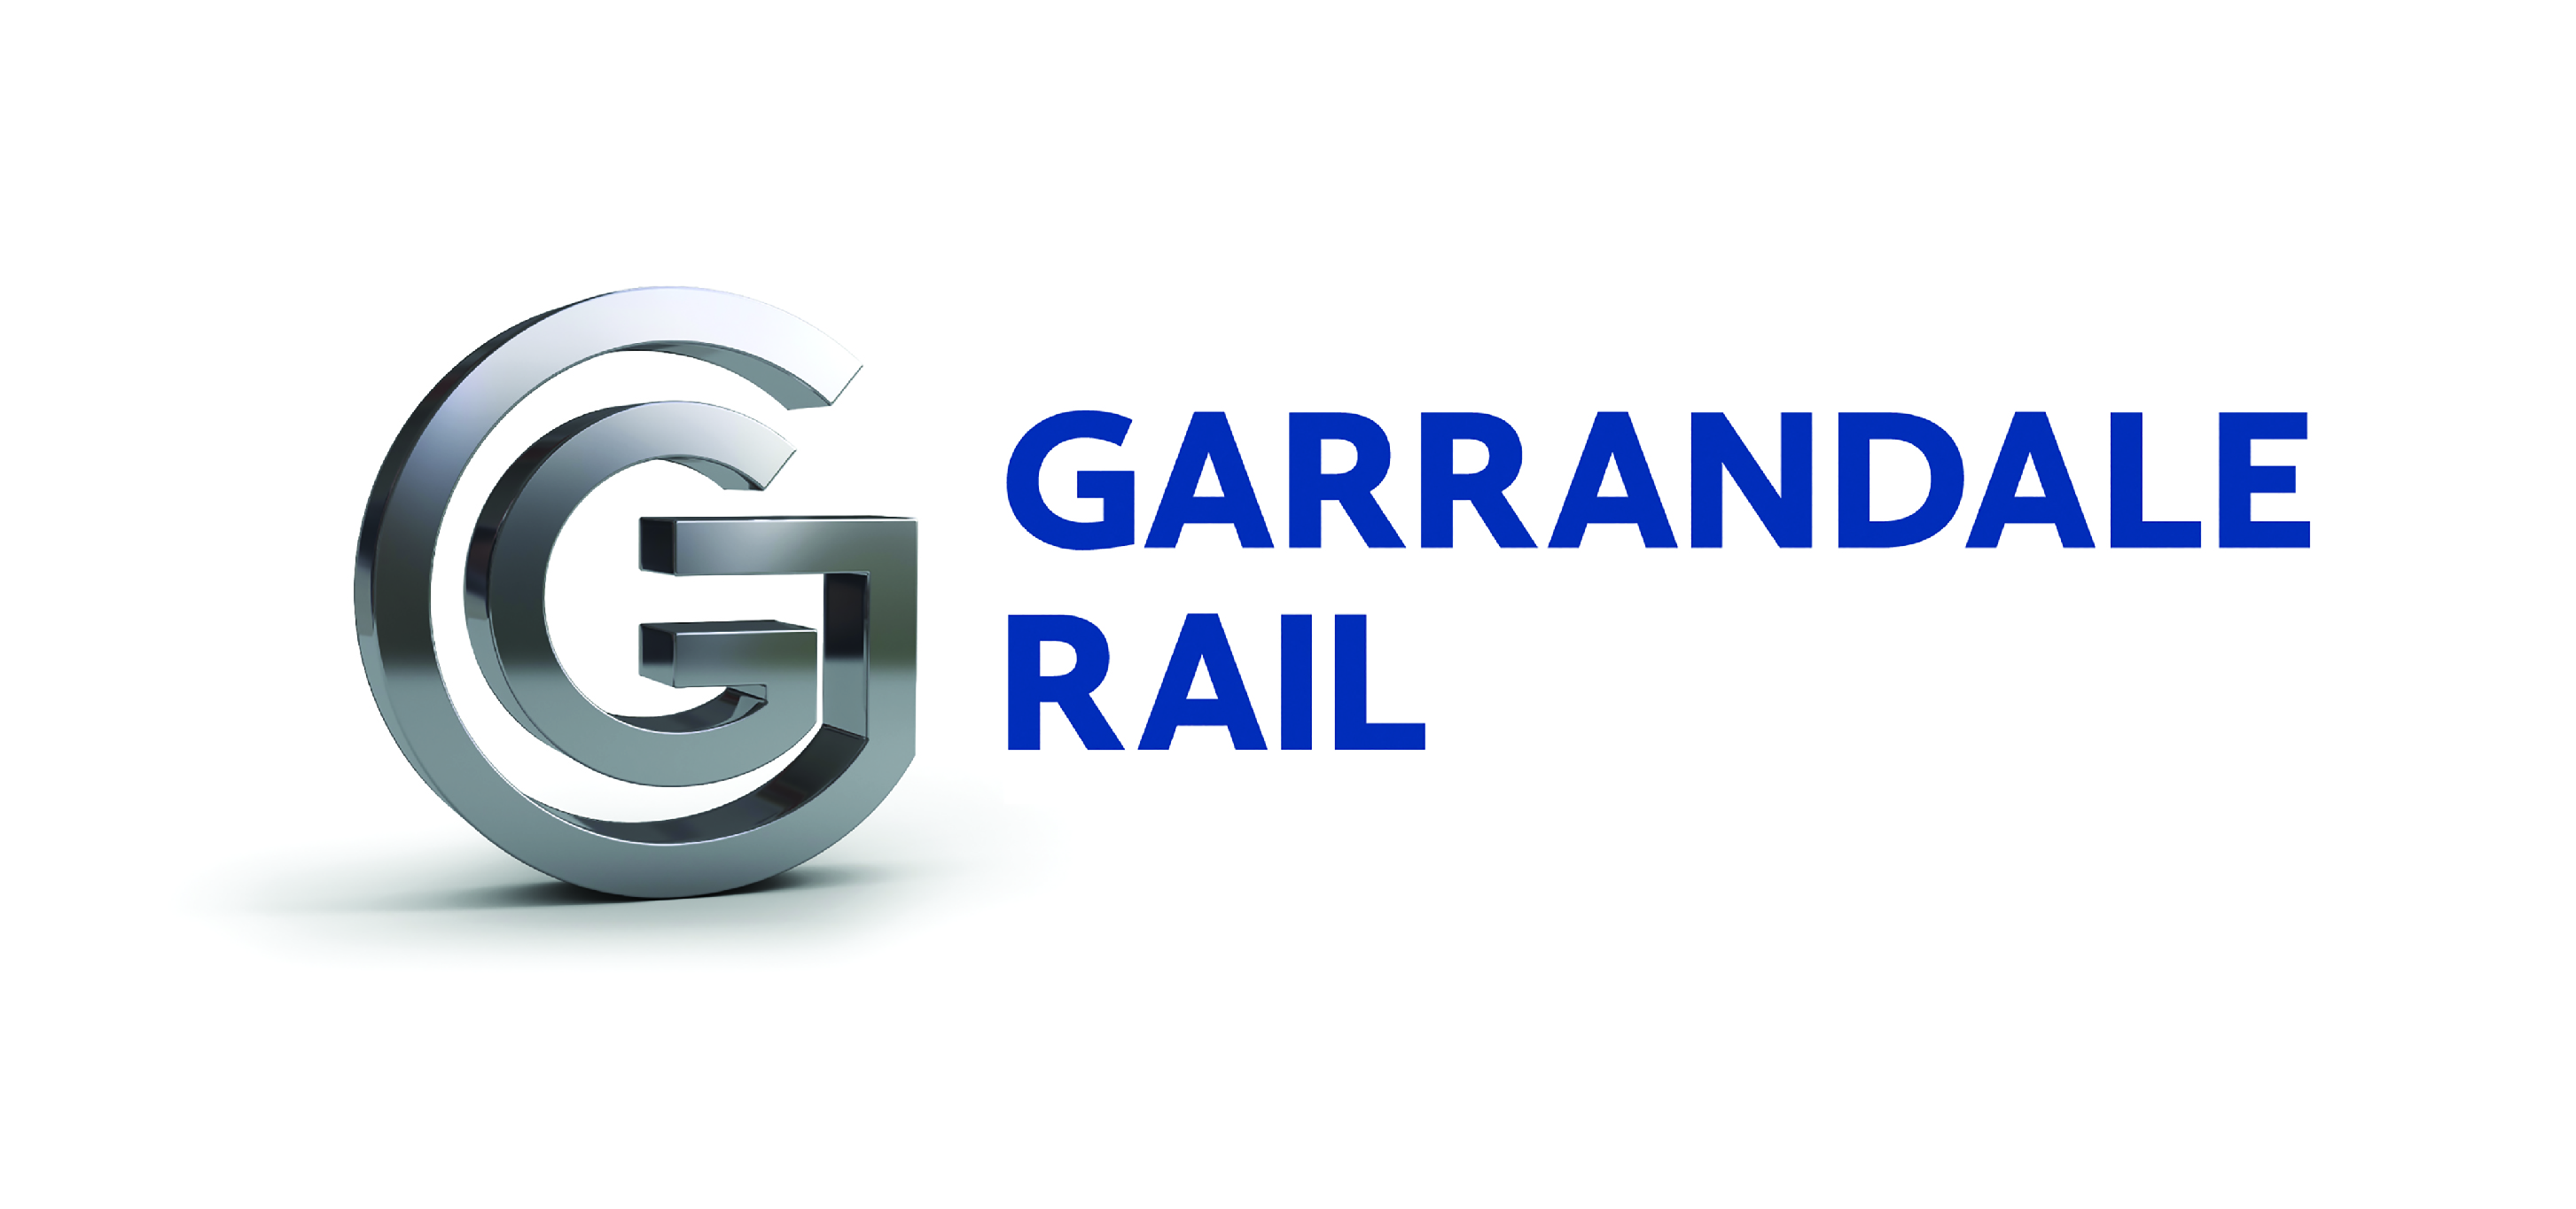 GBR-Rail Ltd